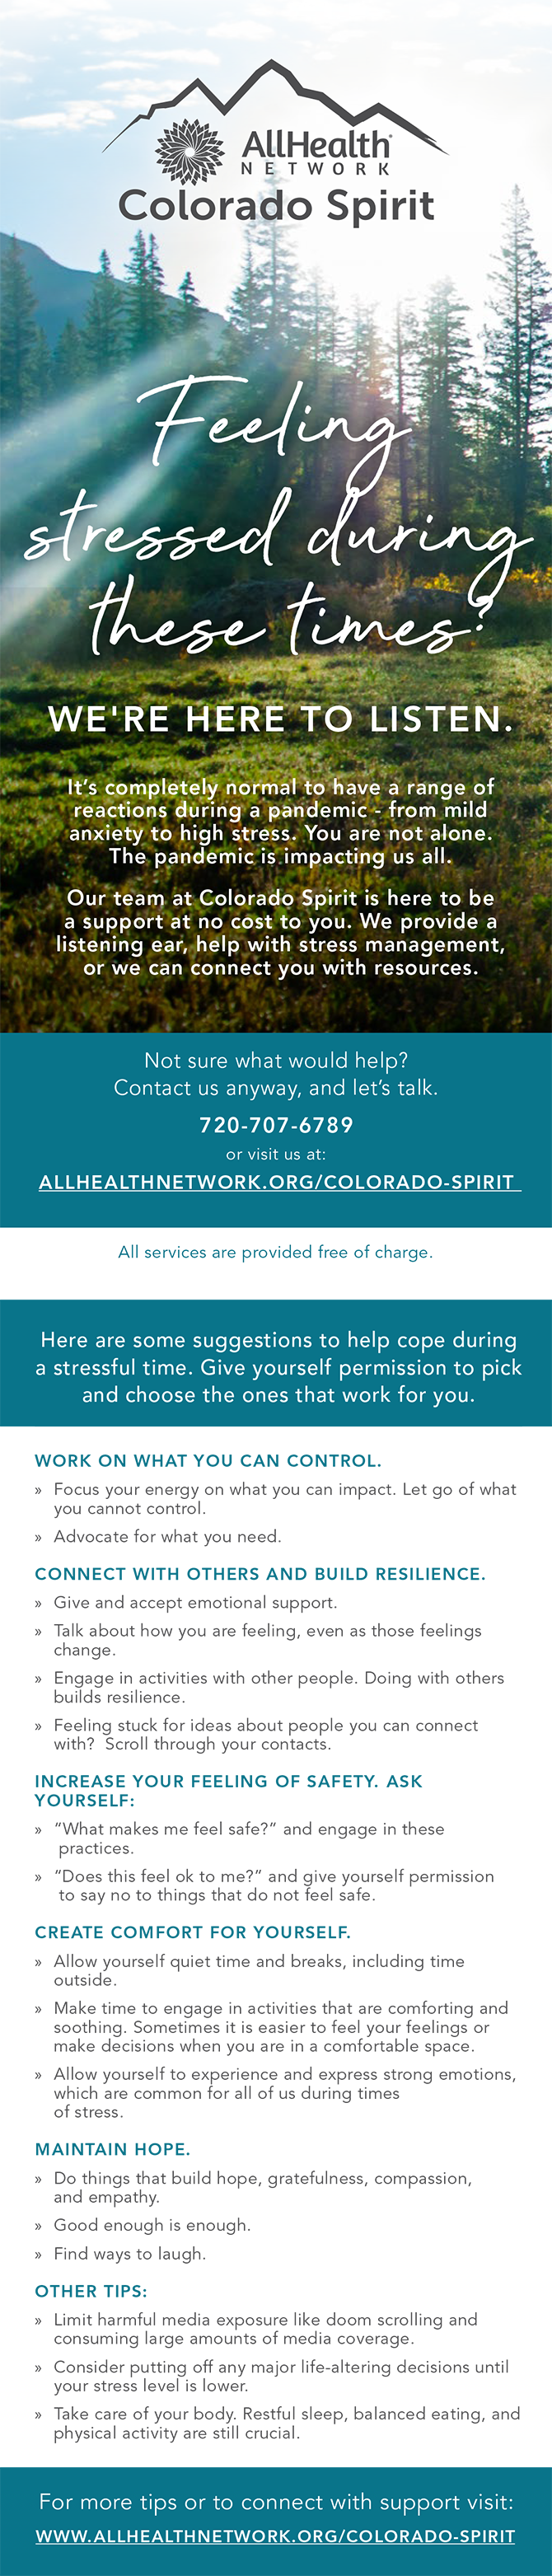 AllHealth Network Colorado Spirit. Feeling Stressed during these times? We're here to listen. Contact Us at 720-707-6789, email COSpirit@AllHealthNetwork.org or visit ALLHEALTHNETWORK.ORG/COLORADO-SPIRIT. All services are provided free of charge.